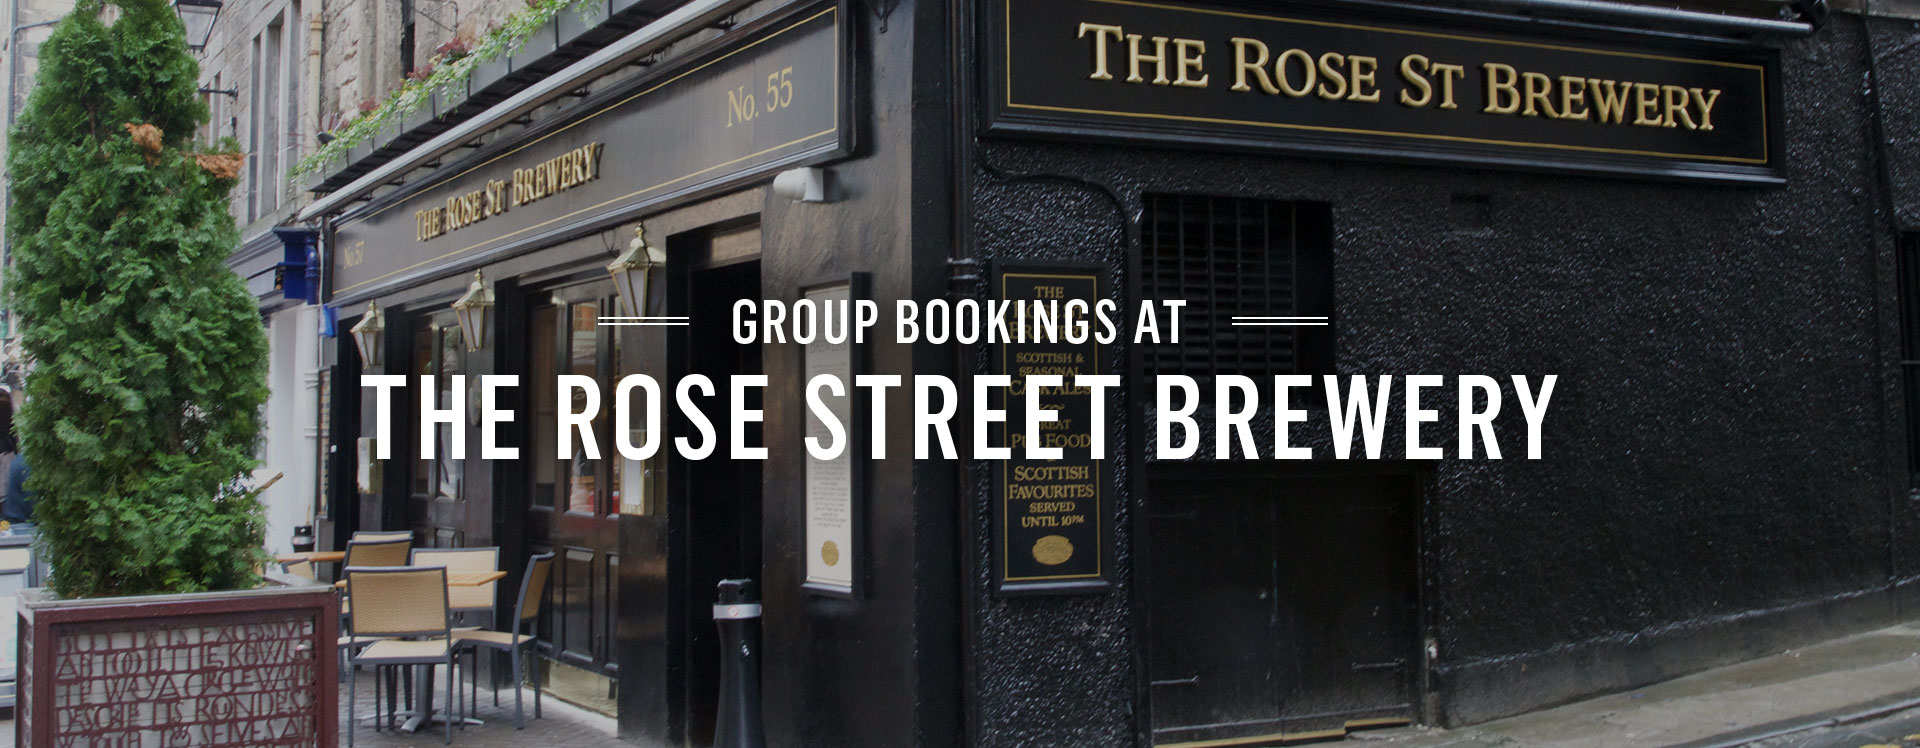 Group Bookings at Rose Street Brewery